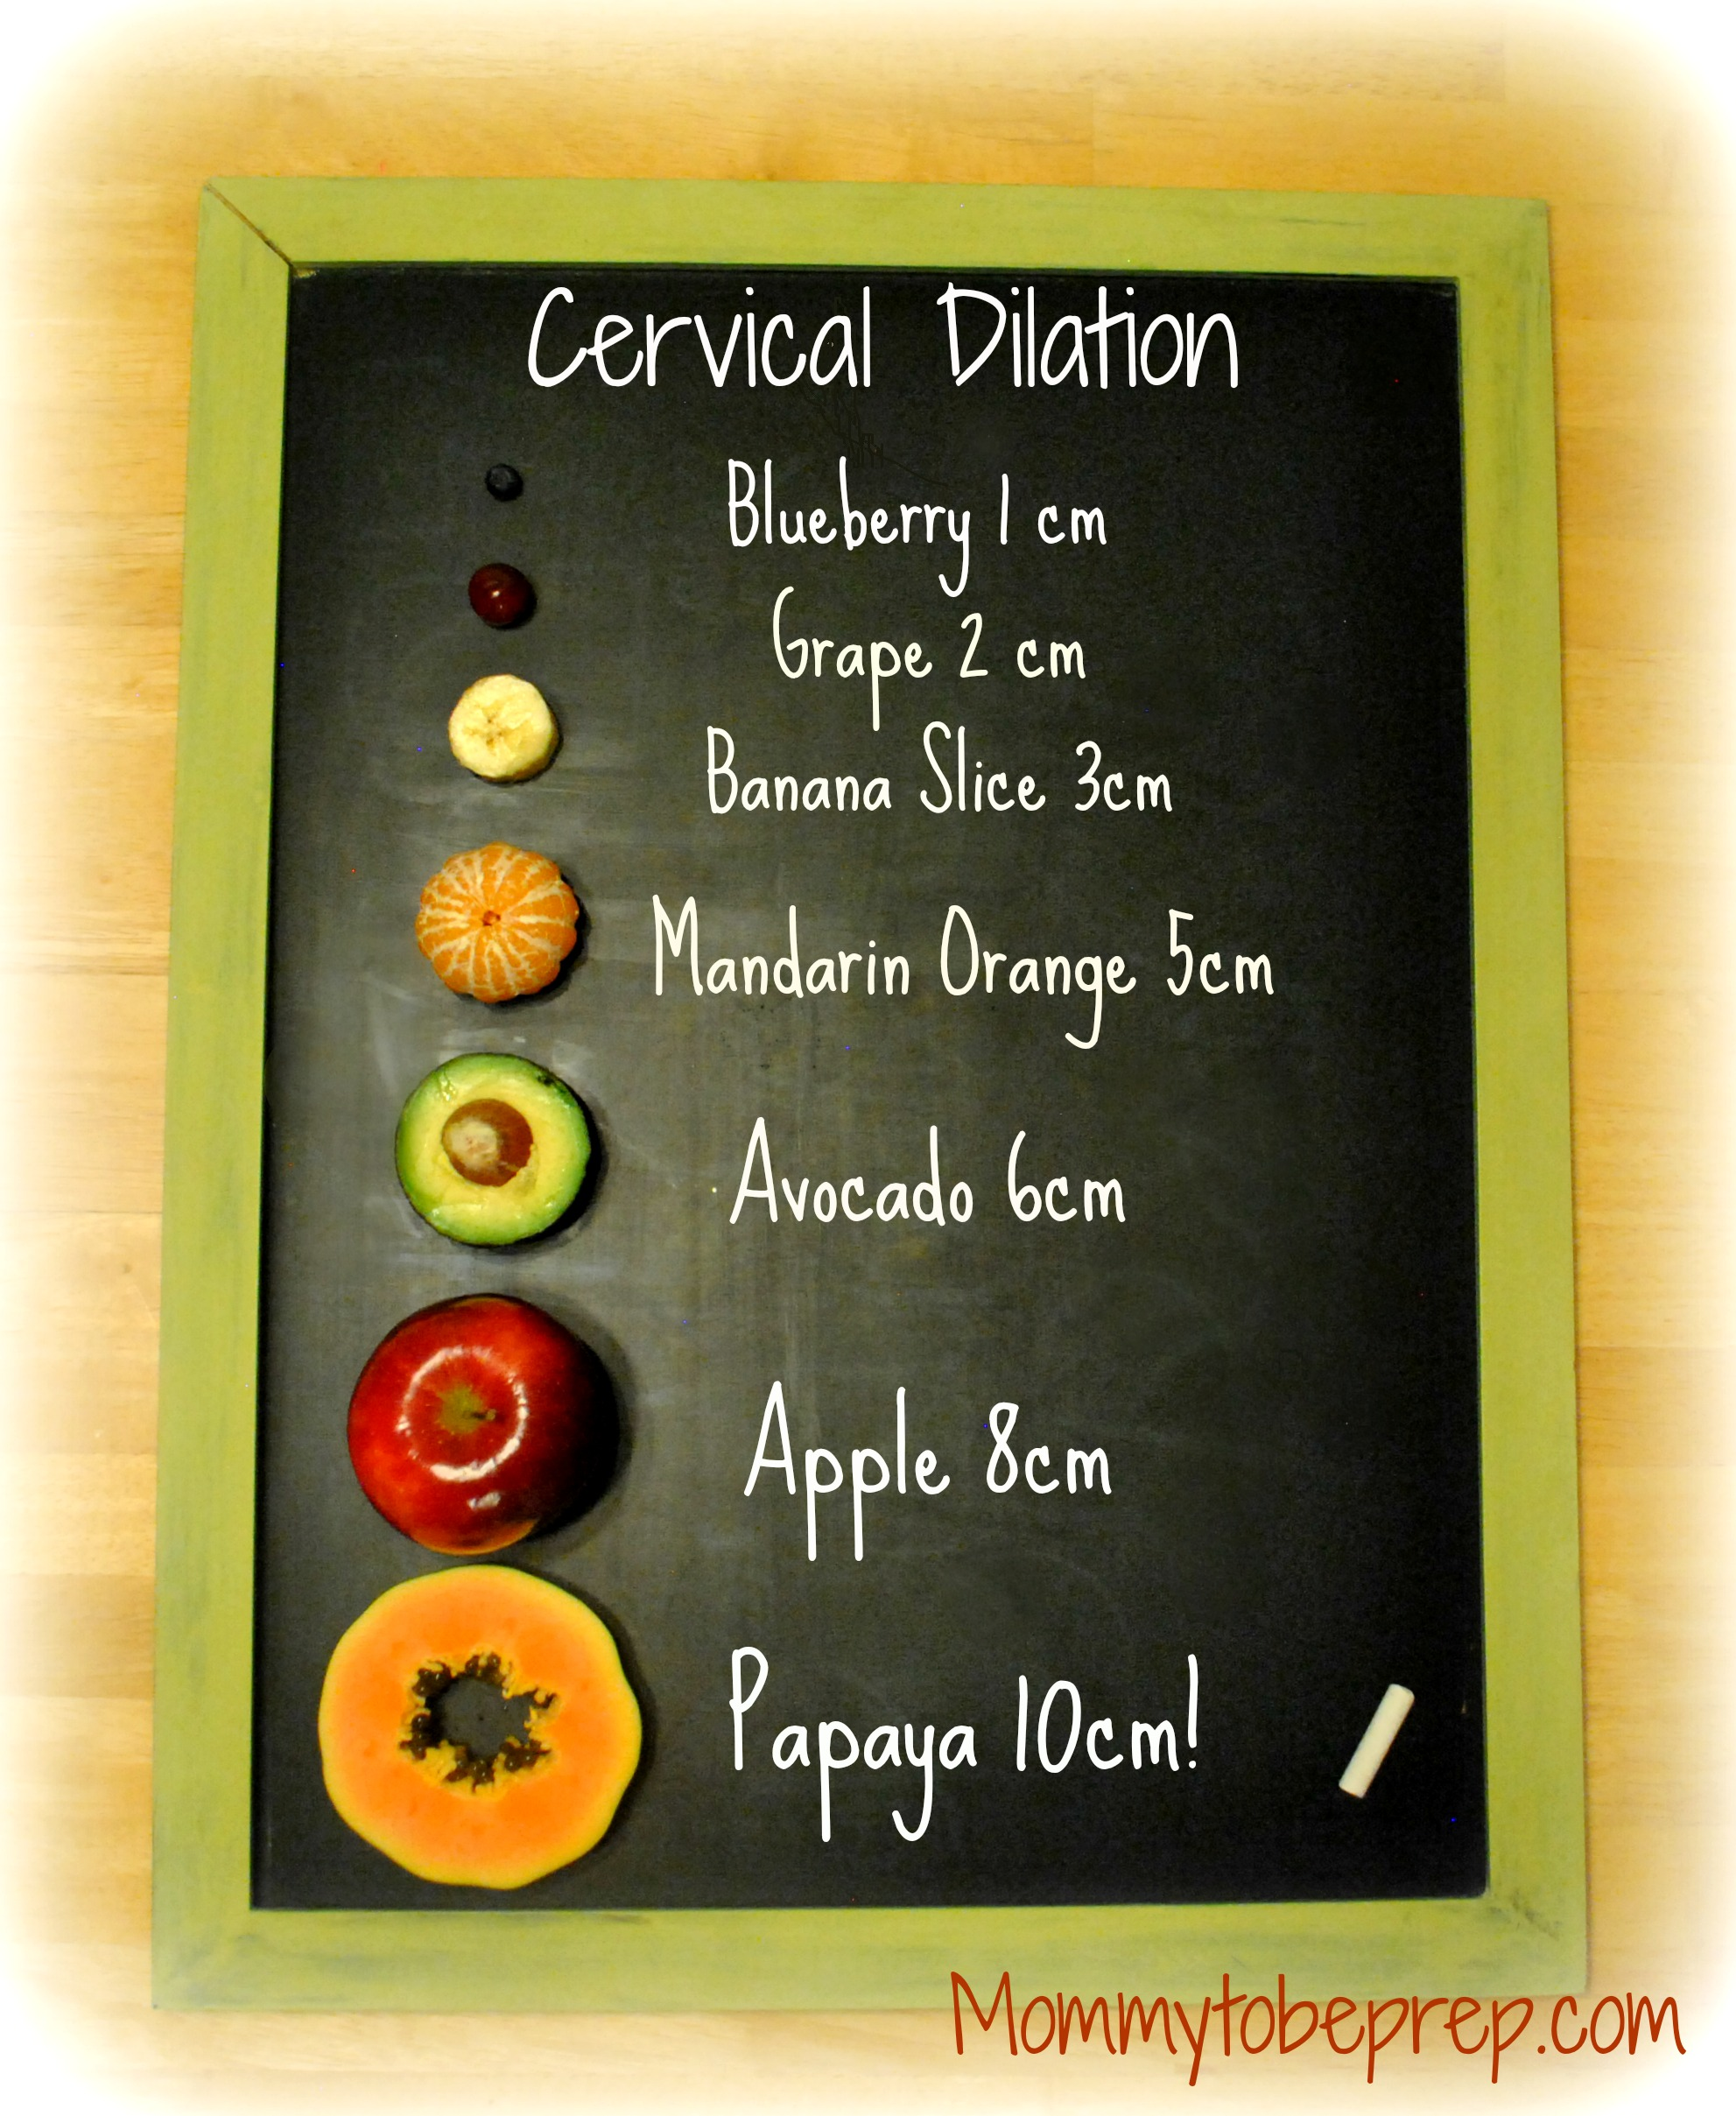 Cervical Dilation and Effacement |Mommy To Be Prep